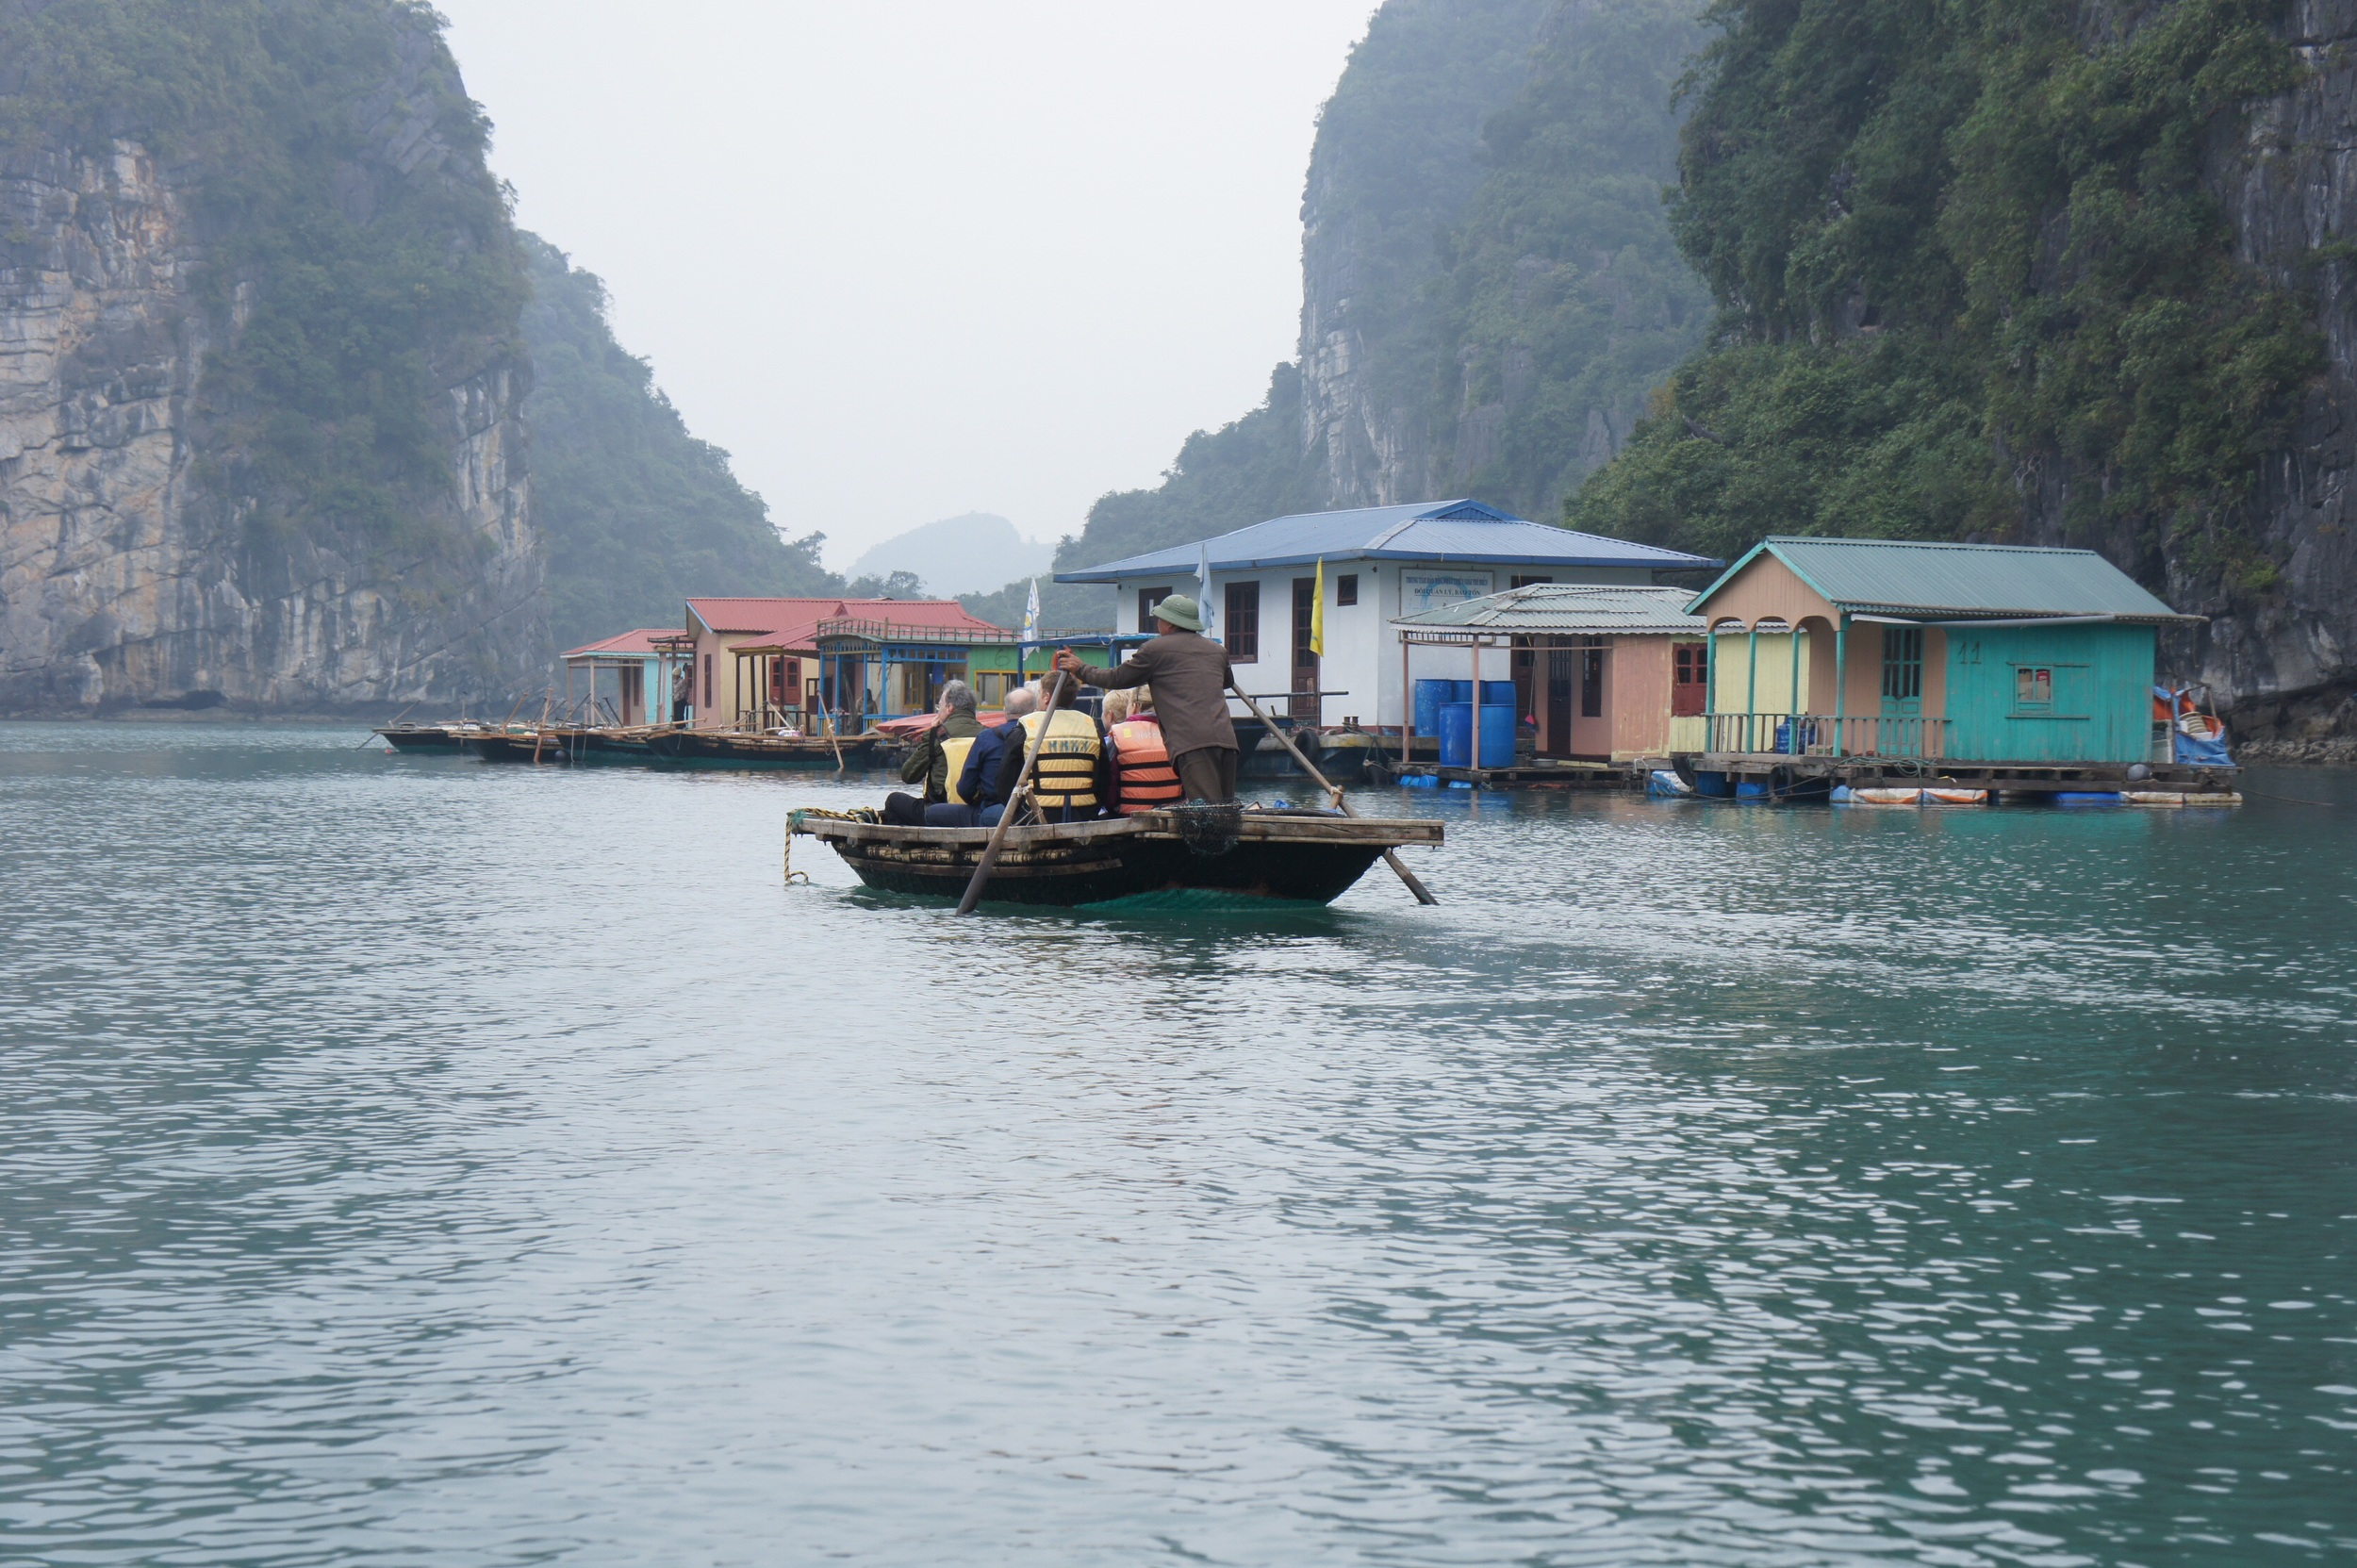 Tourists are rowed around by locals in bamboo boats (this was the boat ahead of us).